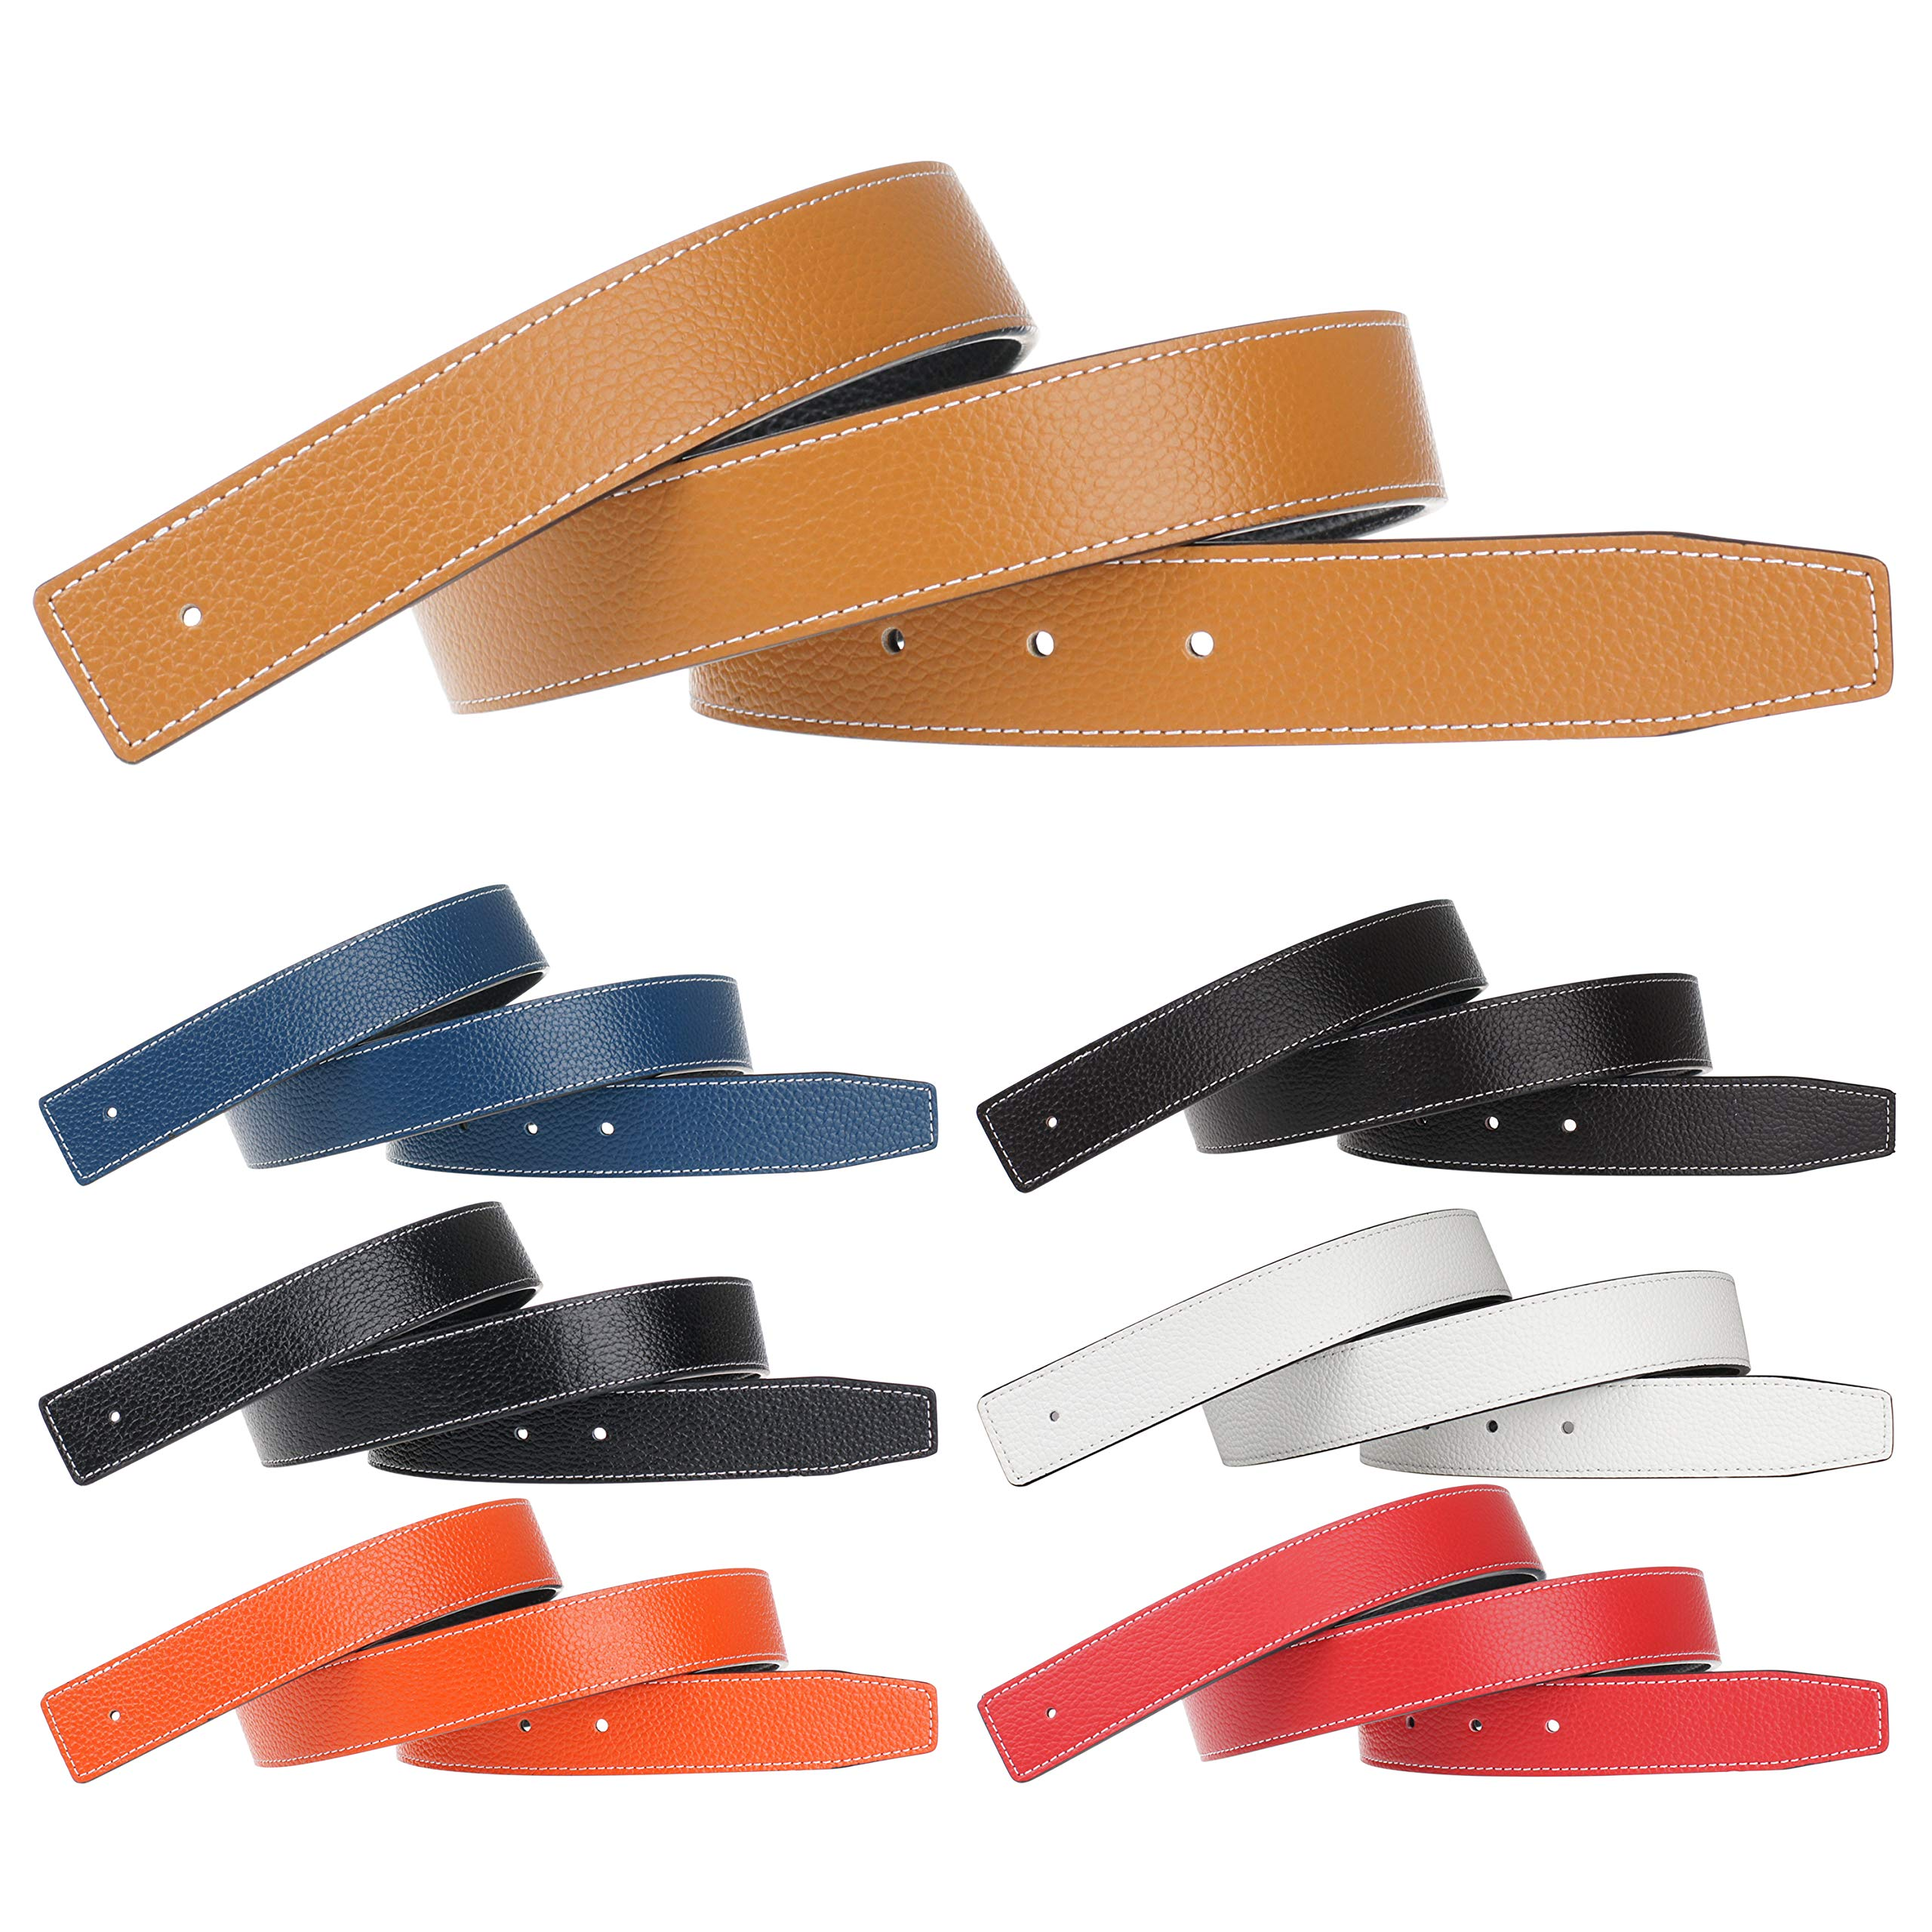 Genuine Leather Belt Replacement Leather Belt Strap Reversible Replacement Belt Strap Without Buckle 40inch 7 Pack